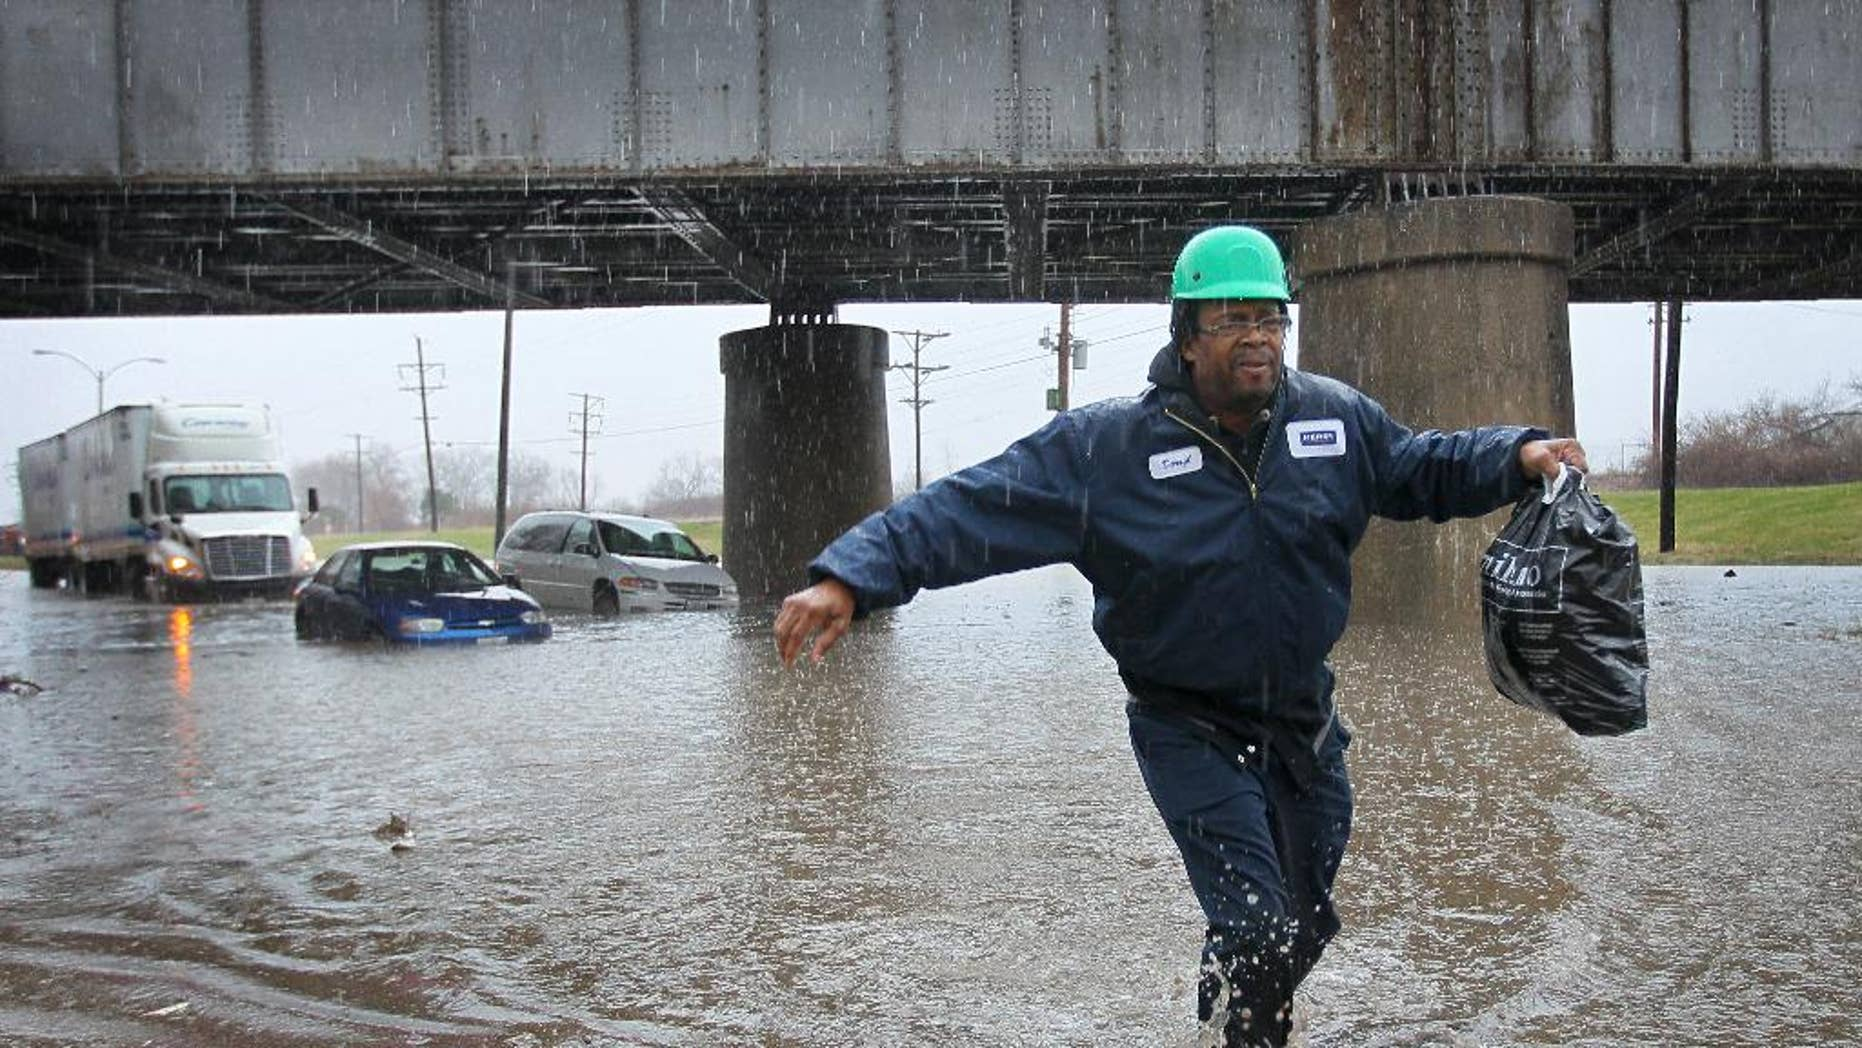 Darryl Hamilton walks away from his minivan stuck in floodwater in St. Louis on Wednesday, April 2, 2014. Three vehicles became stuck in the high water caused by a downpour. Everyone in the vehicles was able to walk out of the water on their own or were helped by police to dry land. (AP Photo/St. Louis Post-Dispatch, David Carson) (AP Photo/St. Louis Post-Dispatch, )  EDWARDSVILLE INTELLIGENCER OUT; THE ALTON TELEGRAPH OUT.